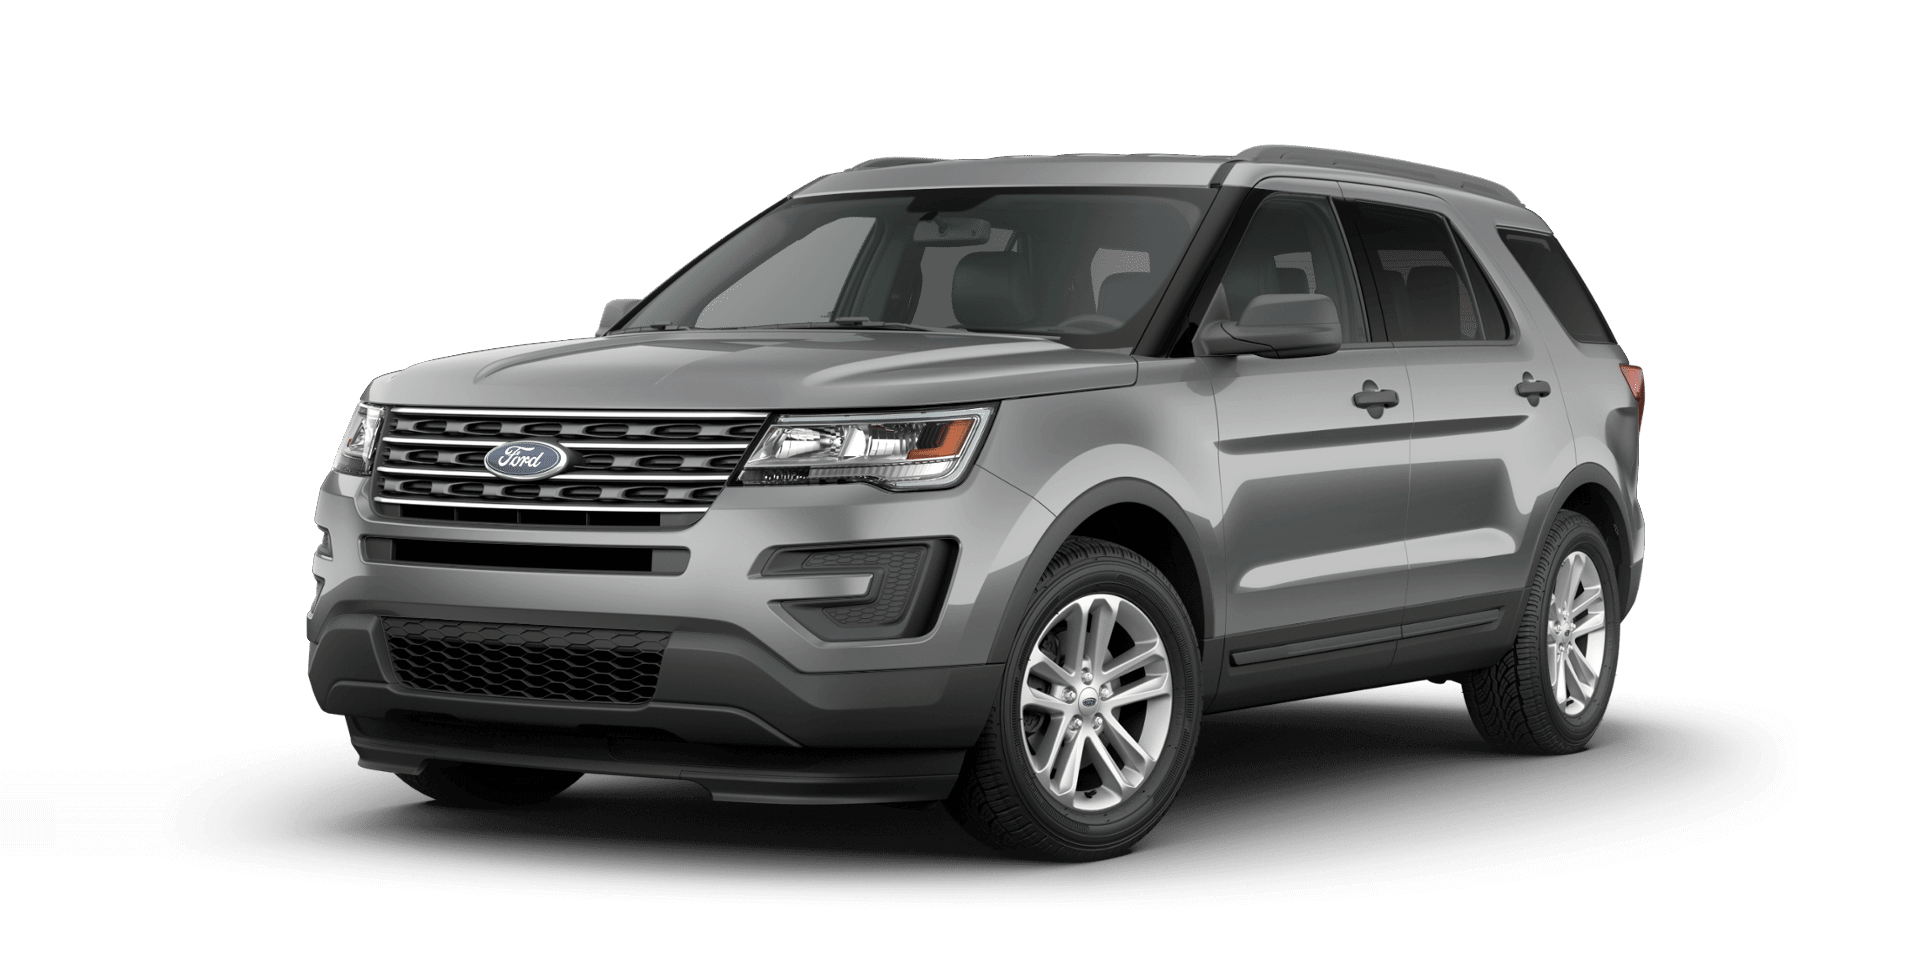 2017 ford explorer model info bill kay ford best cars 2019 ford